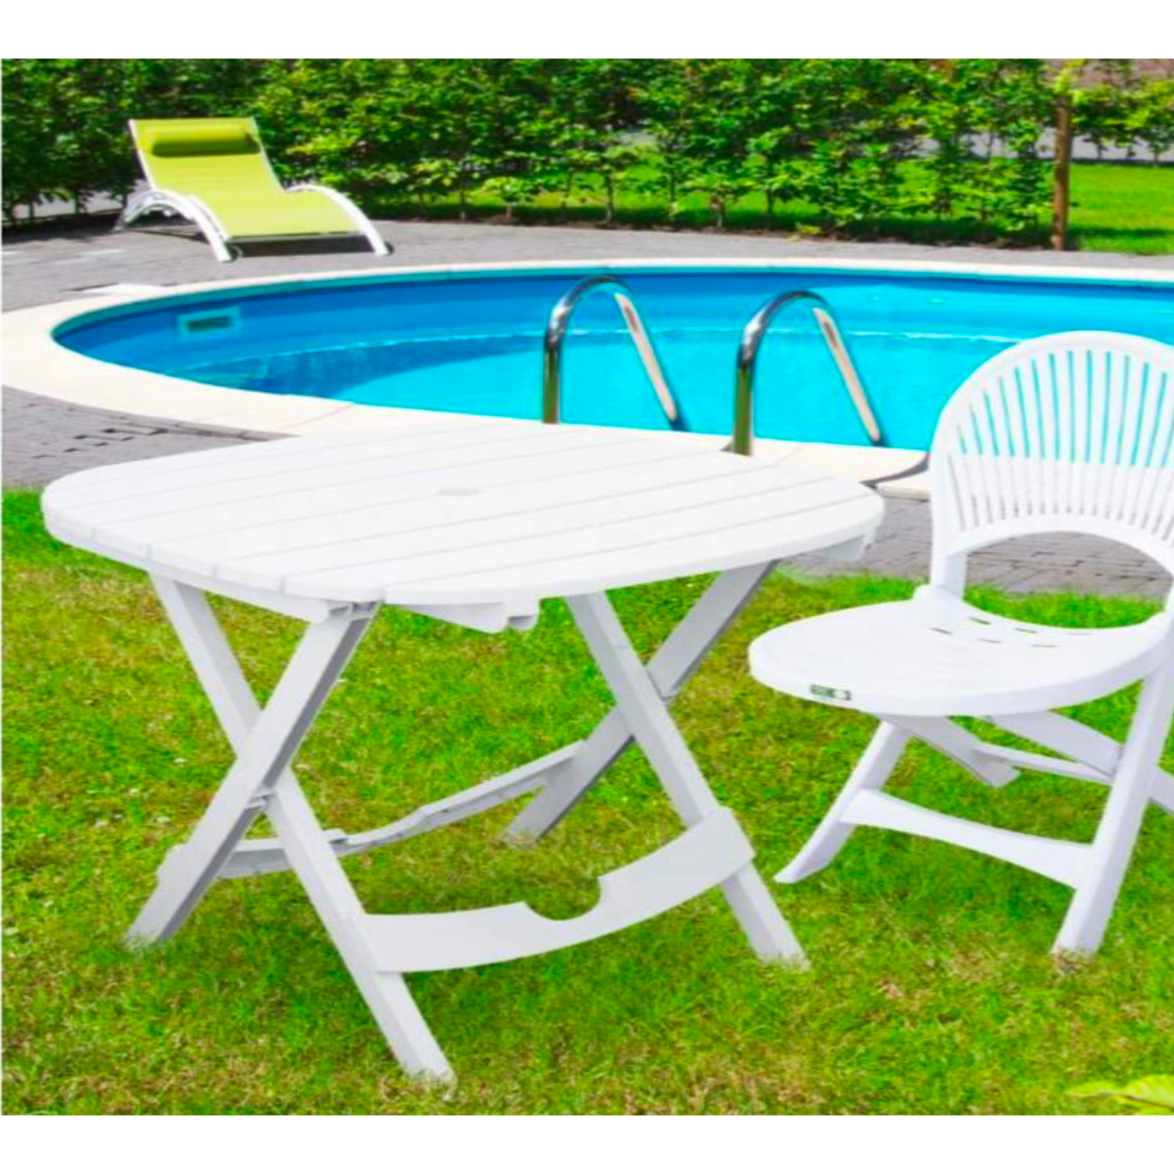 table de jardin blanche pliable lot avec 2 chaises. Black Bedroom Furniture Sets. Home Design Ideas